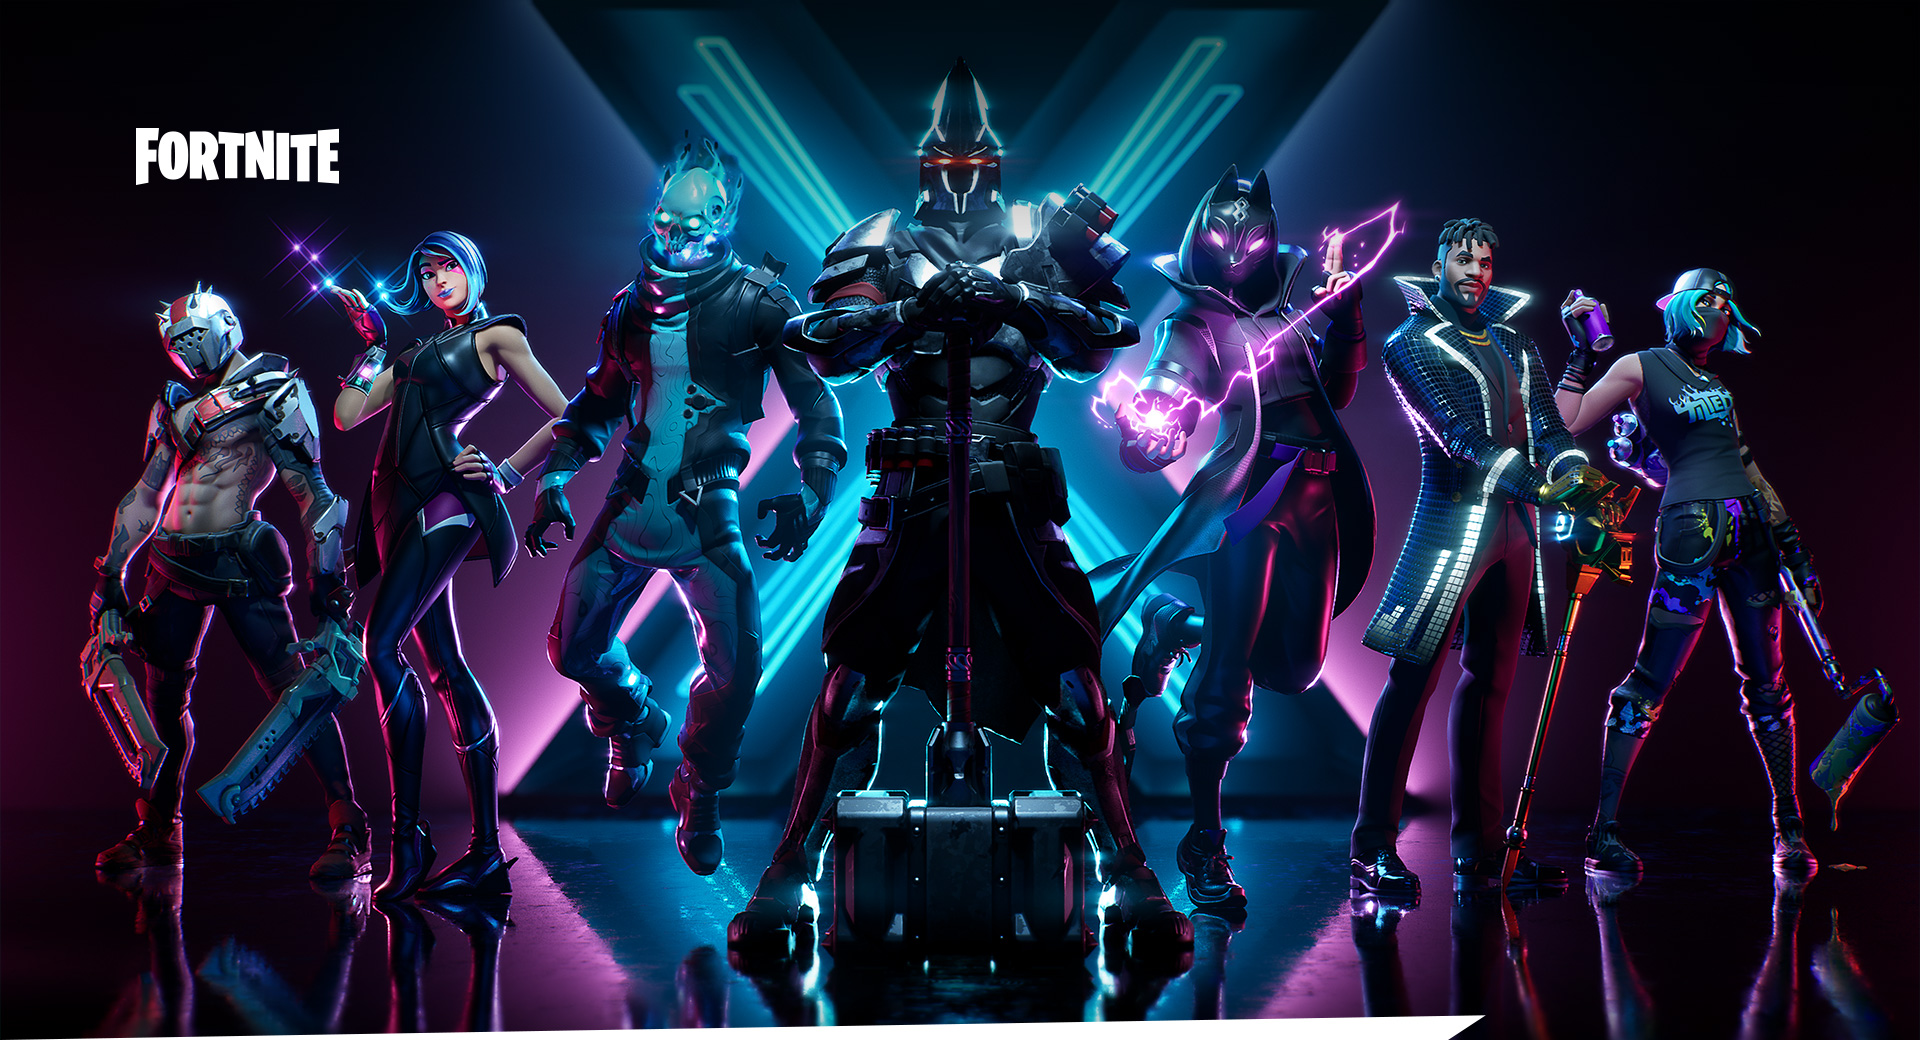 Fortnite, front view of seven Fortnite characters posing